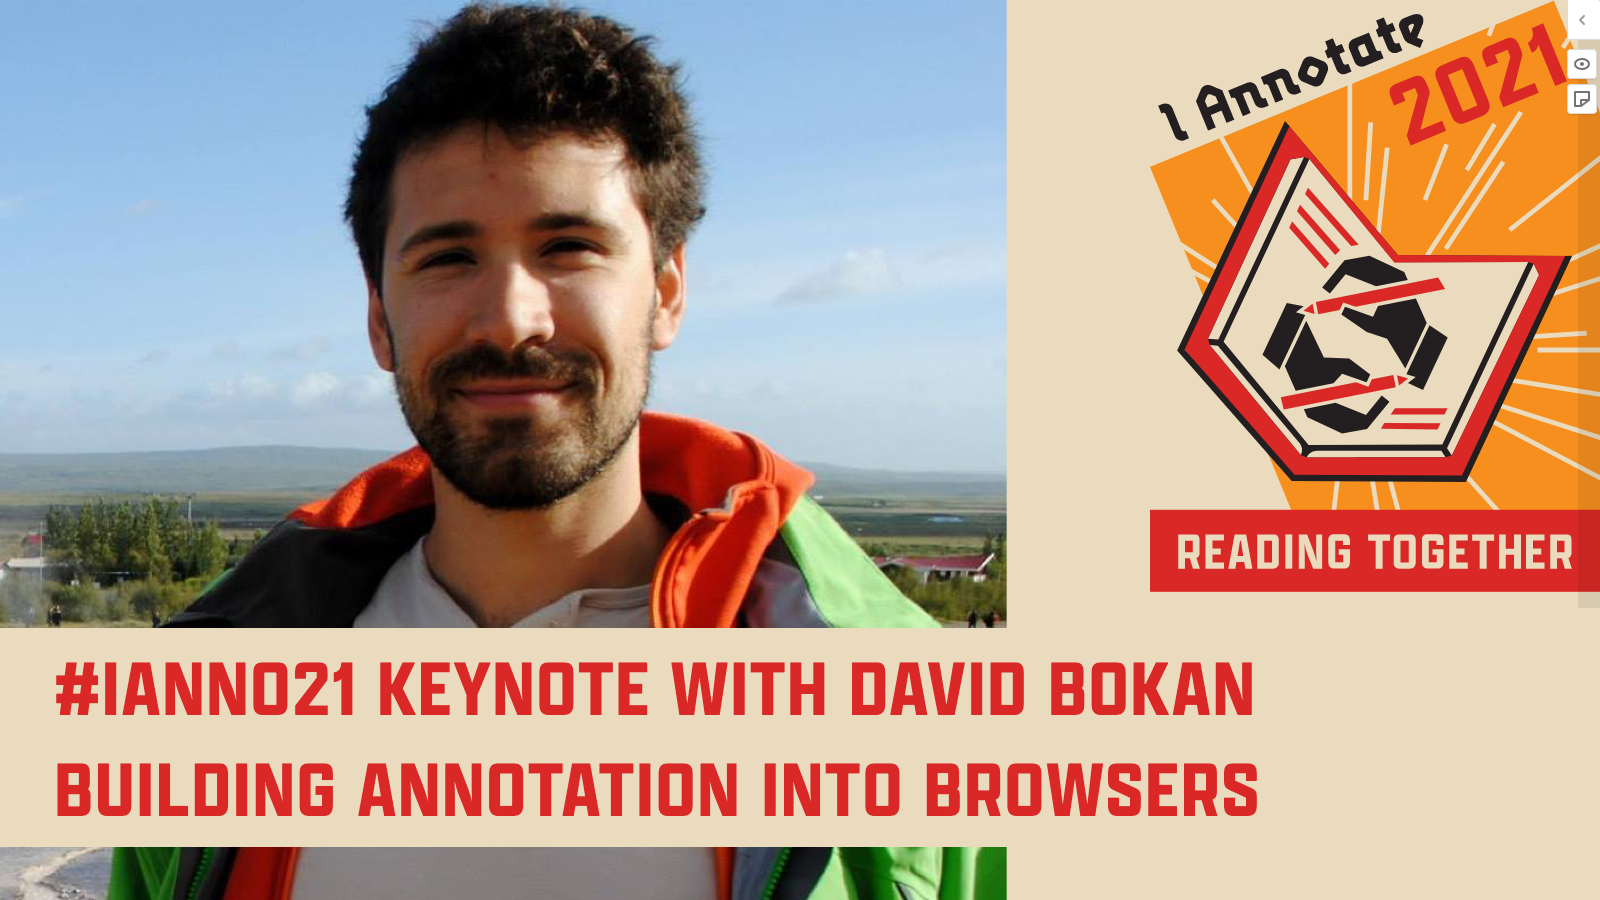 """Thumbnail from David Bokan's #ianno21 Keynote video, showing his headshots, the event logo, and the title of his session: """"Building Annotation Into Browsers"""""""